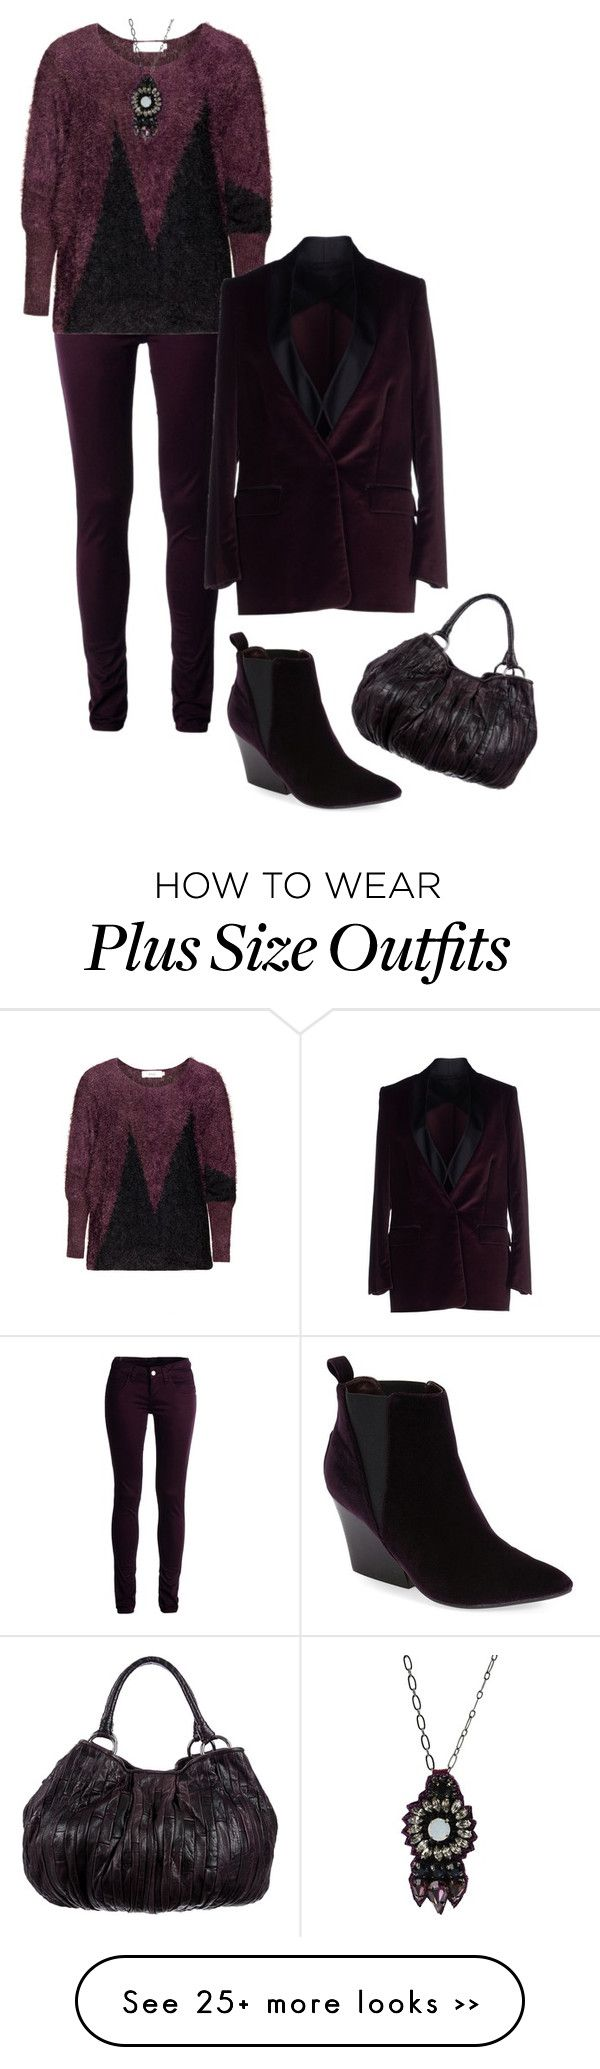 """Purple and black"" by perpetto on Polyvore featuring Monkee Genes, Zizzi, Tonello, Report, Miu Miu and Deepa Gurnani"